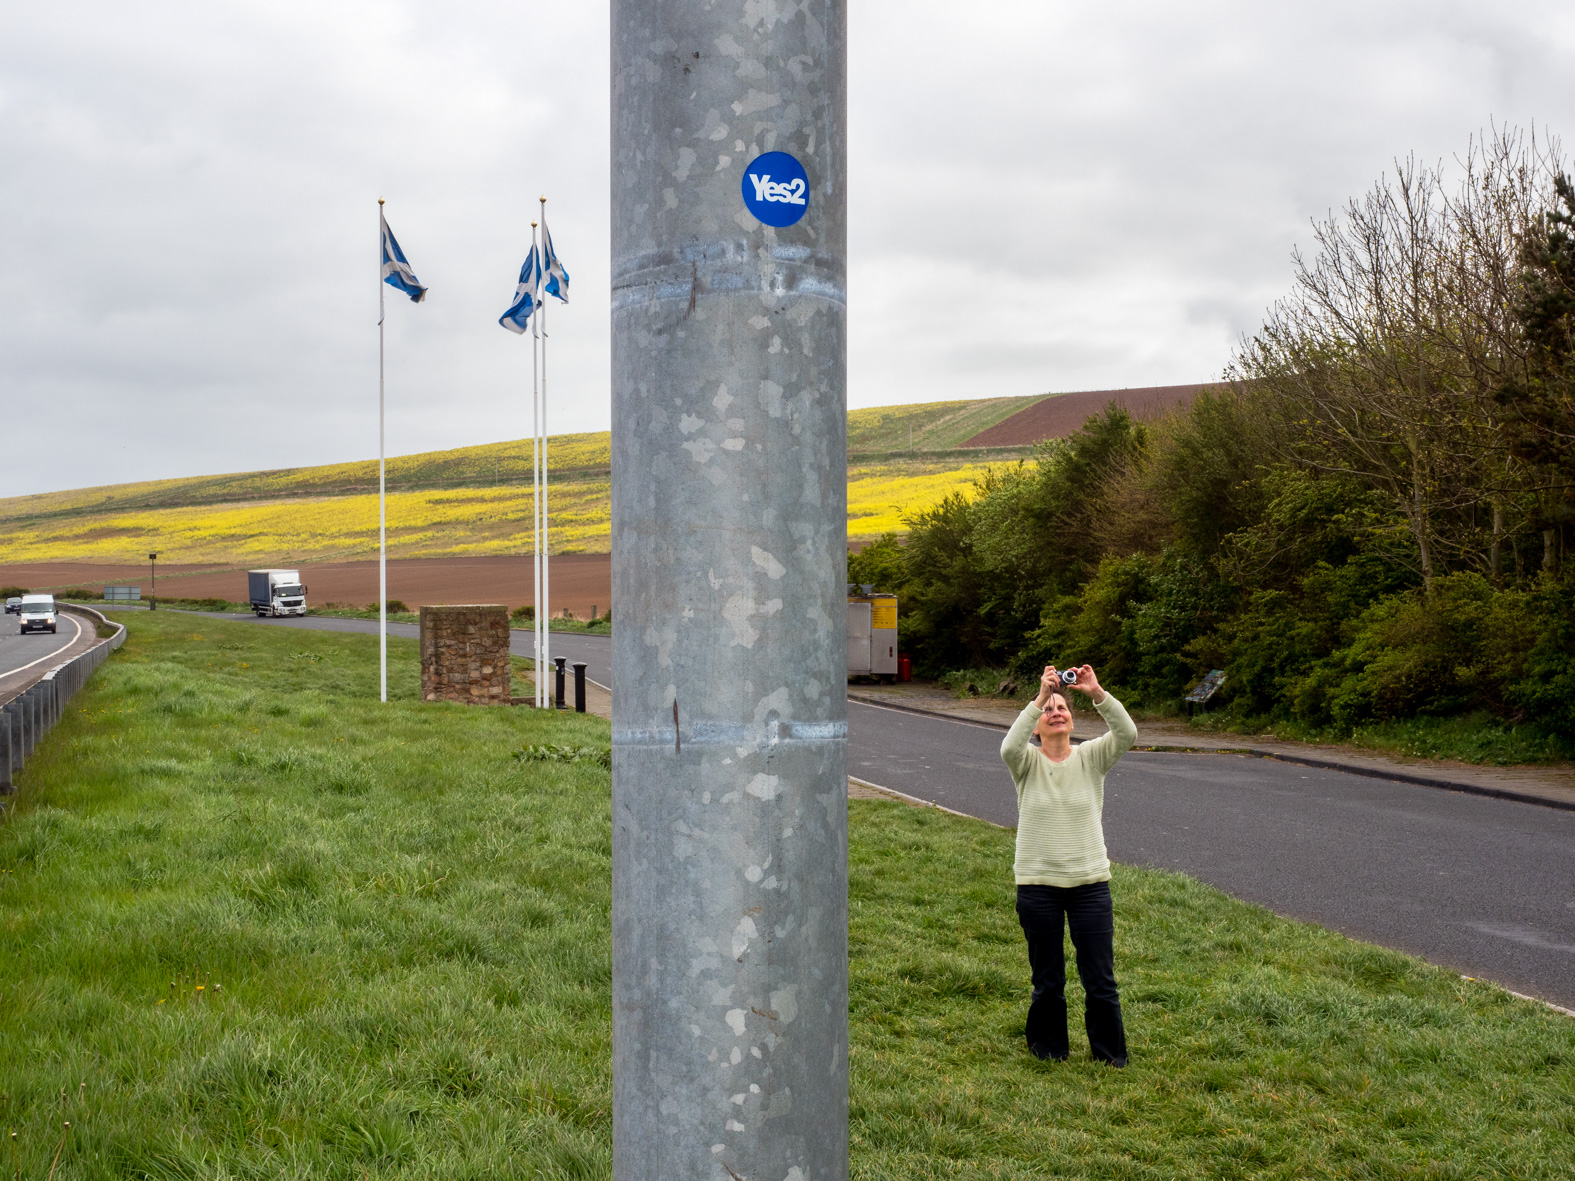 A pro Scottish independence sticker on a post at the England/Scotland border.